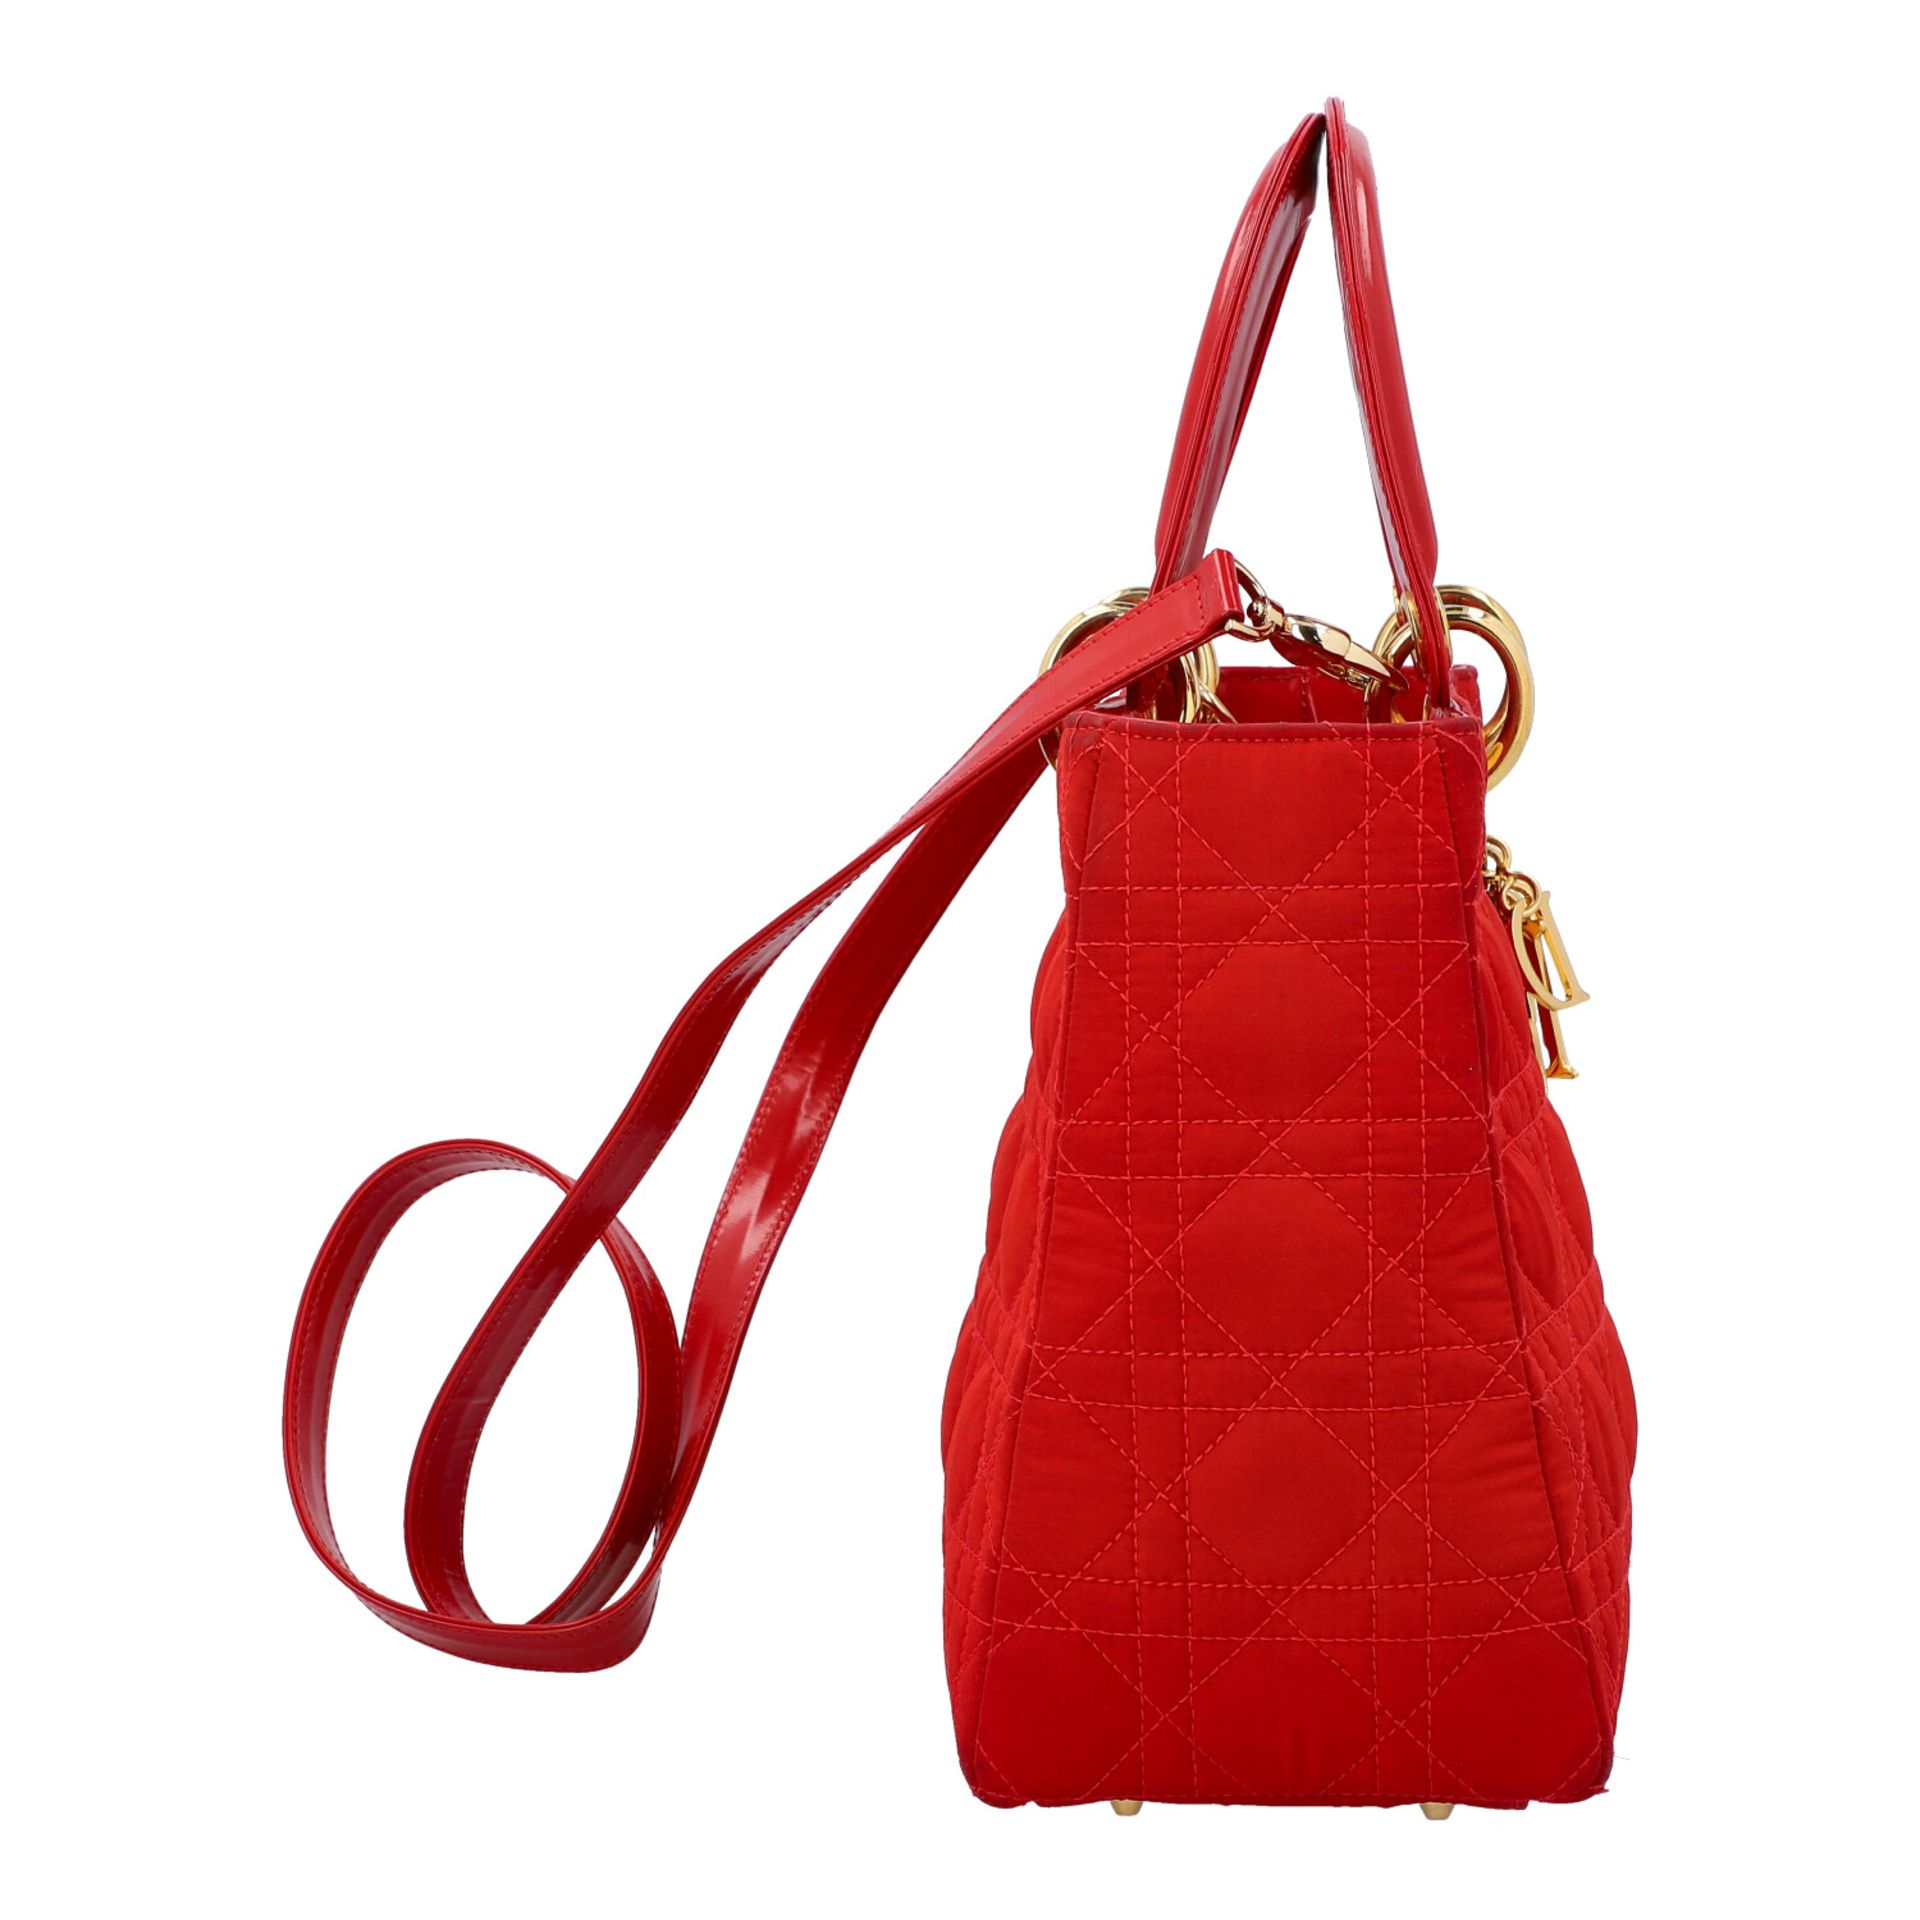 """CHRISTIAN DIOR Henkeltasche """"LADY DIOR"""", Koll.: 1997. Textil in Rot mit Cannage Steppu - Image 3 of 8"""